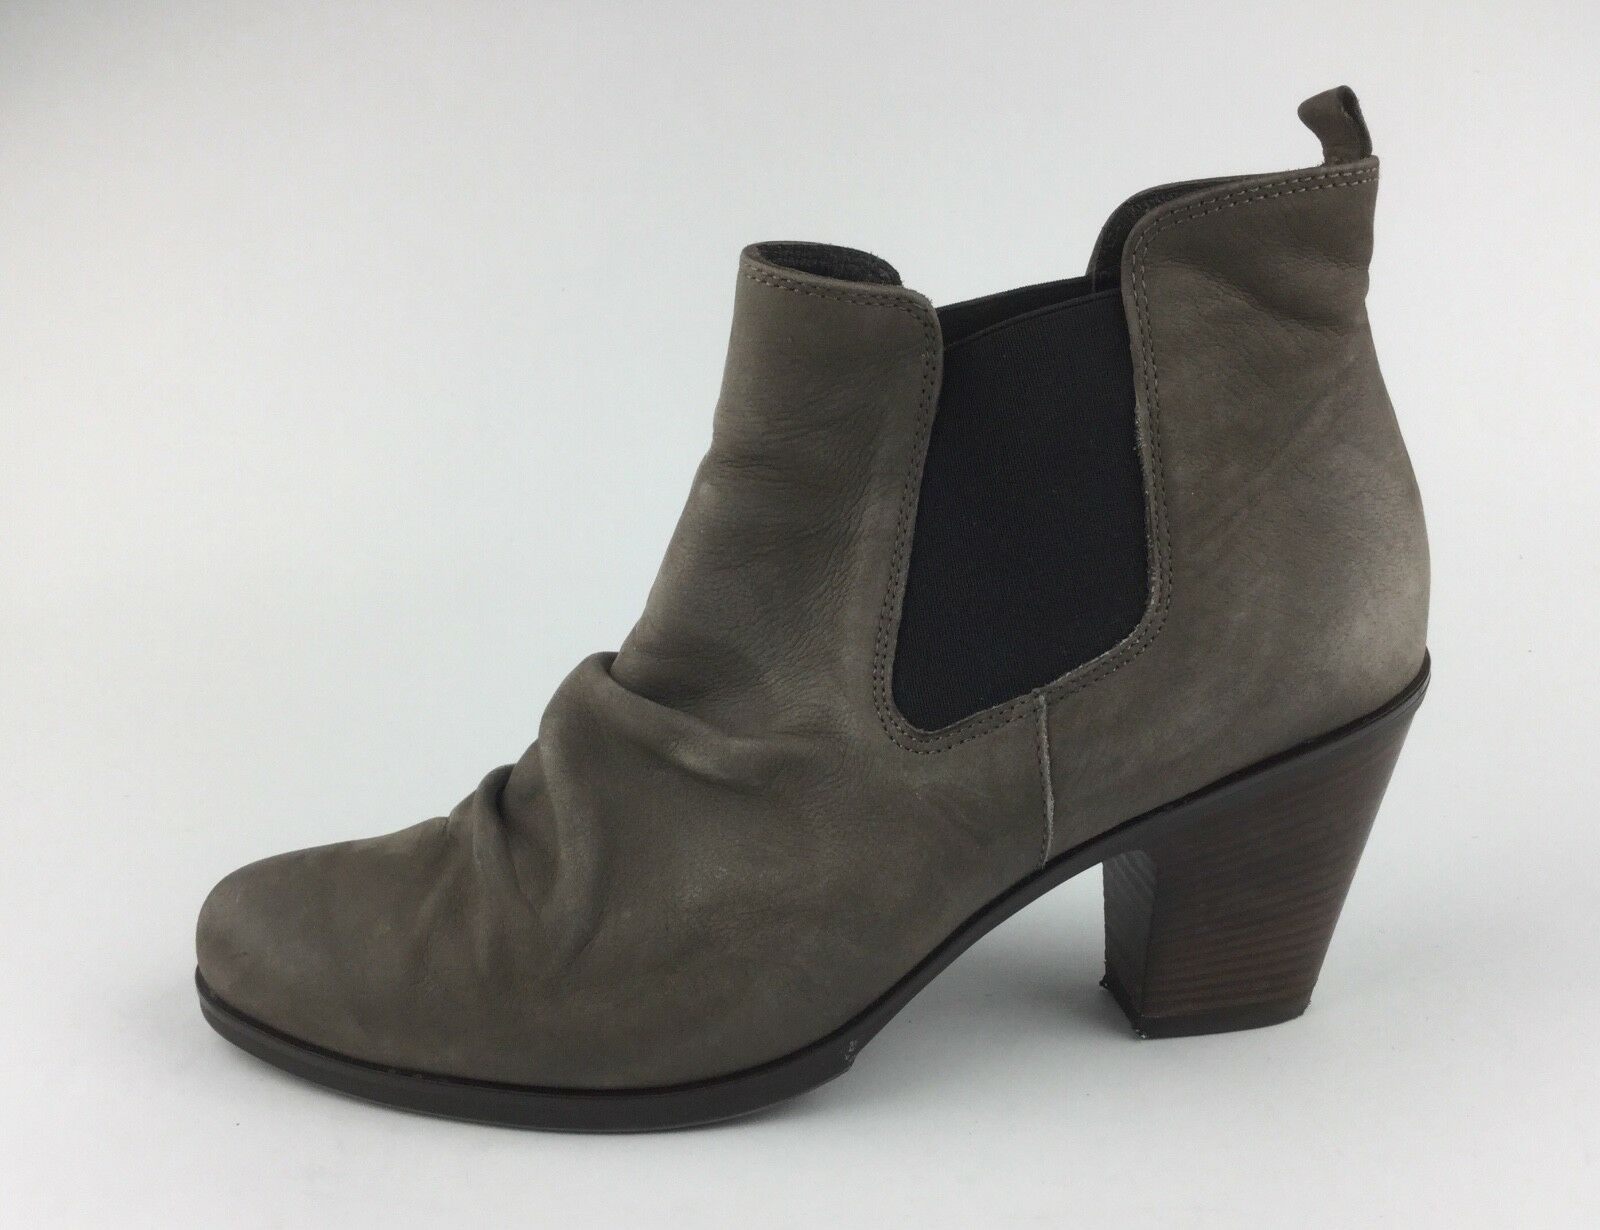 Paul Green Womens Taupe Leather Ankle Boots Heels Sz US 7.5